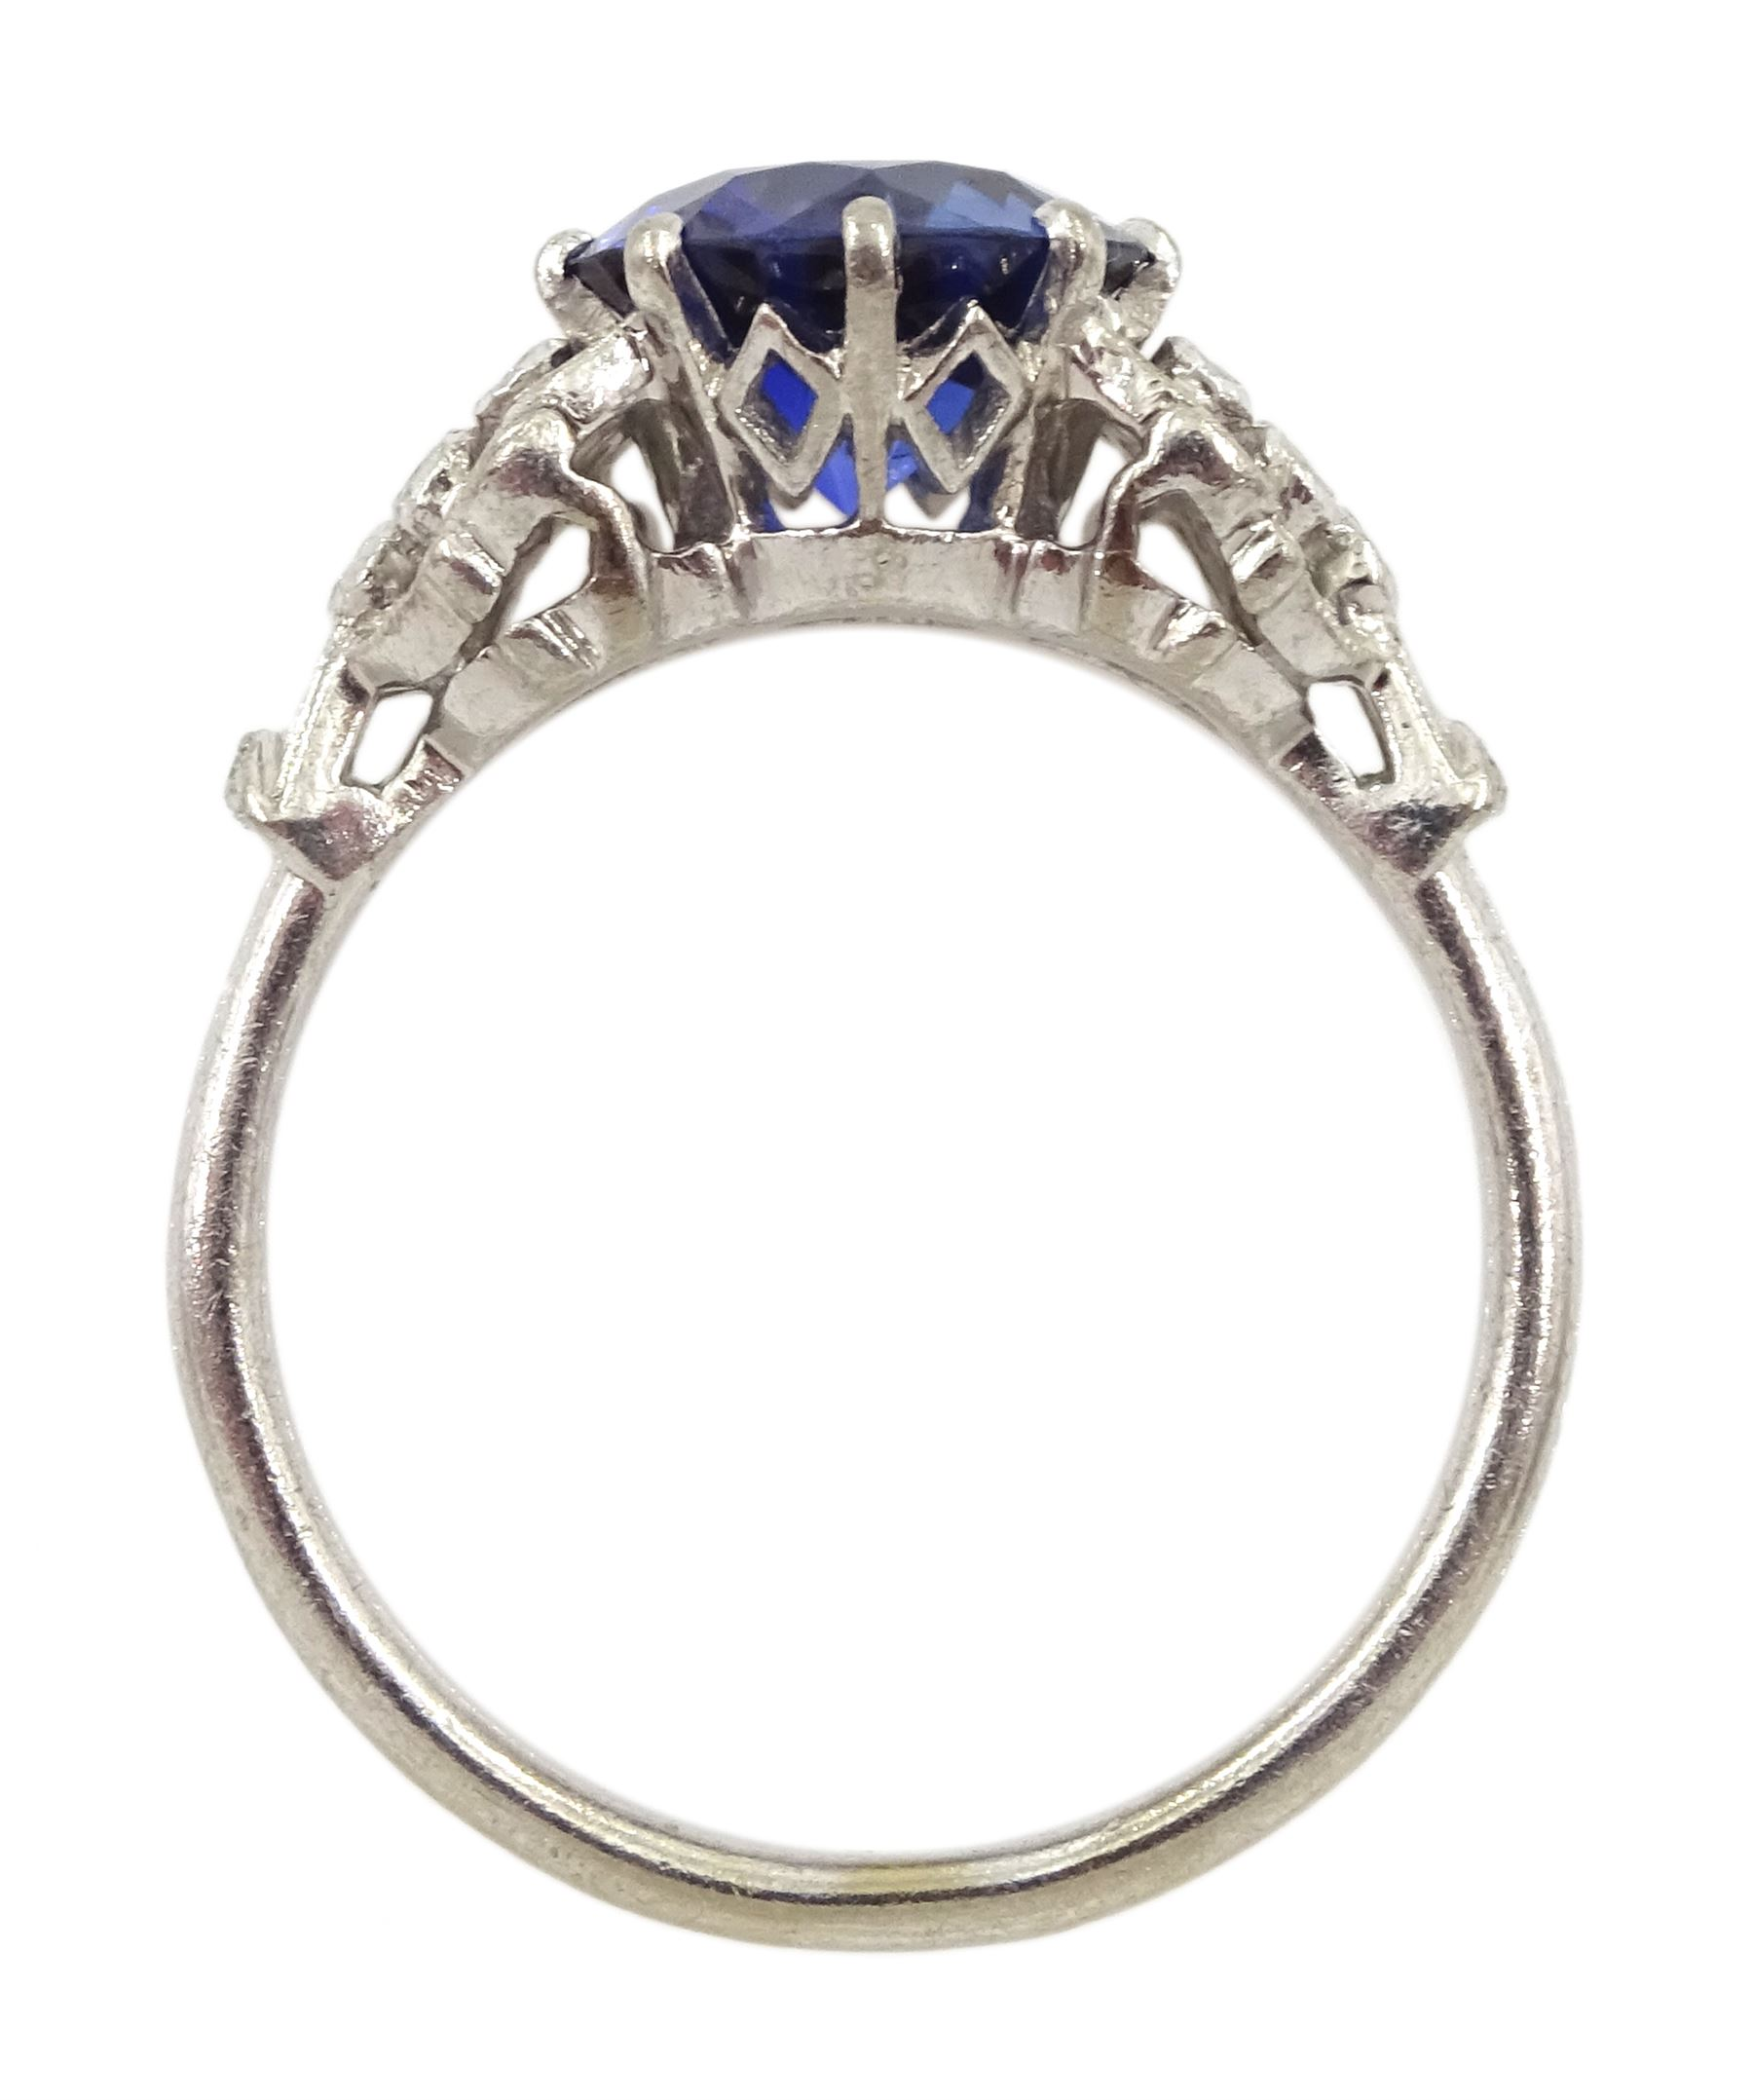 White gold round synthetic sapphire and diamond ring - Image 2 of 4